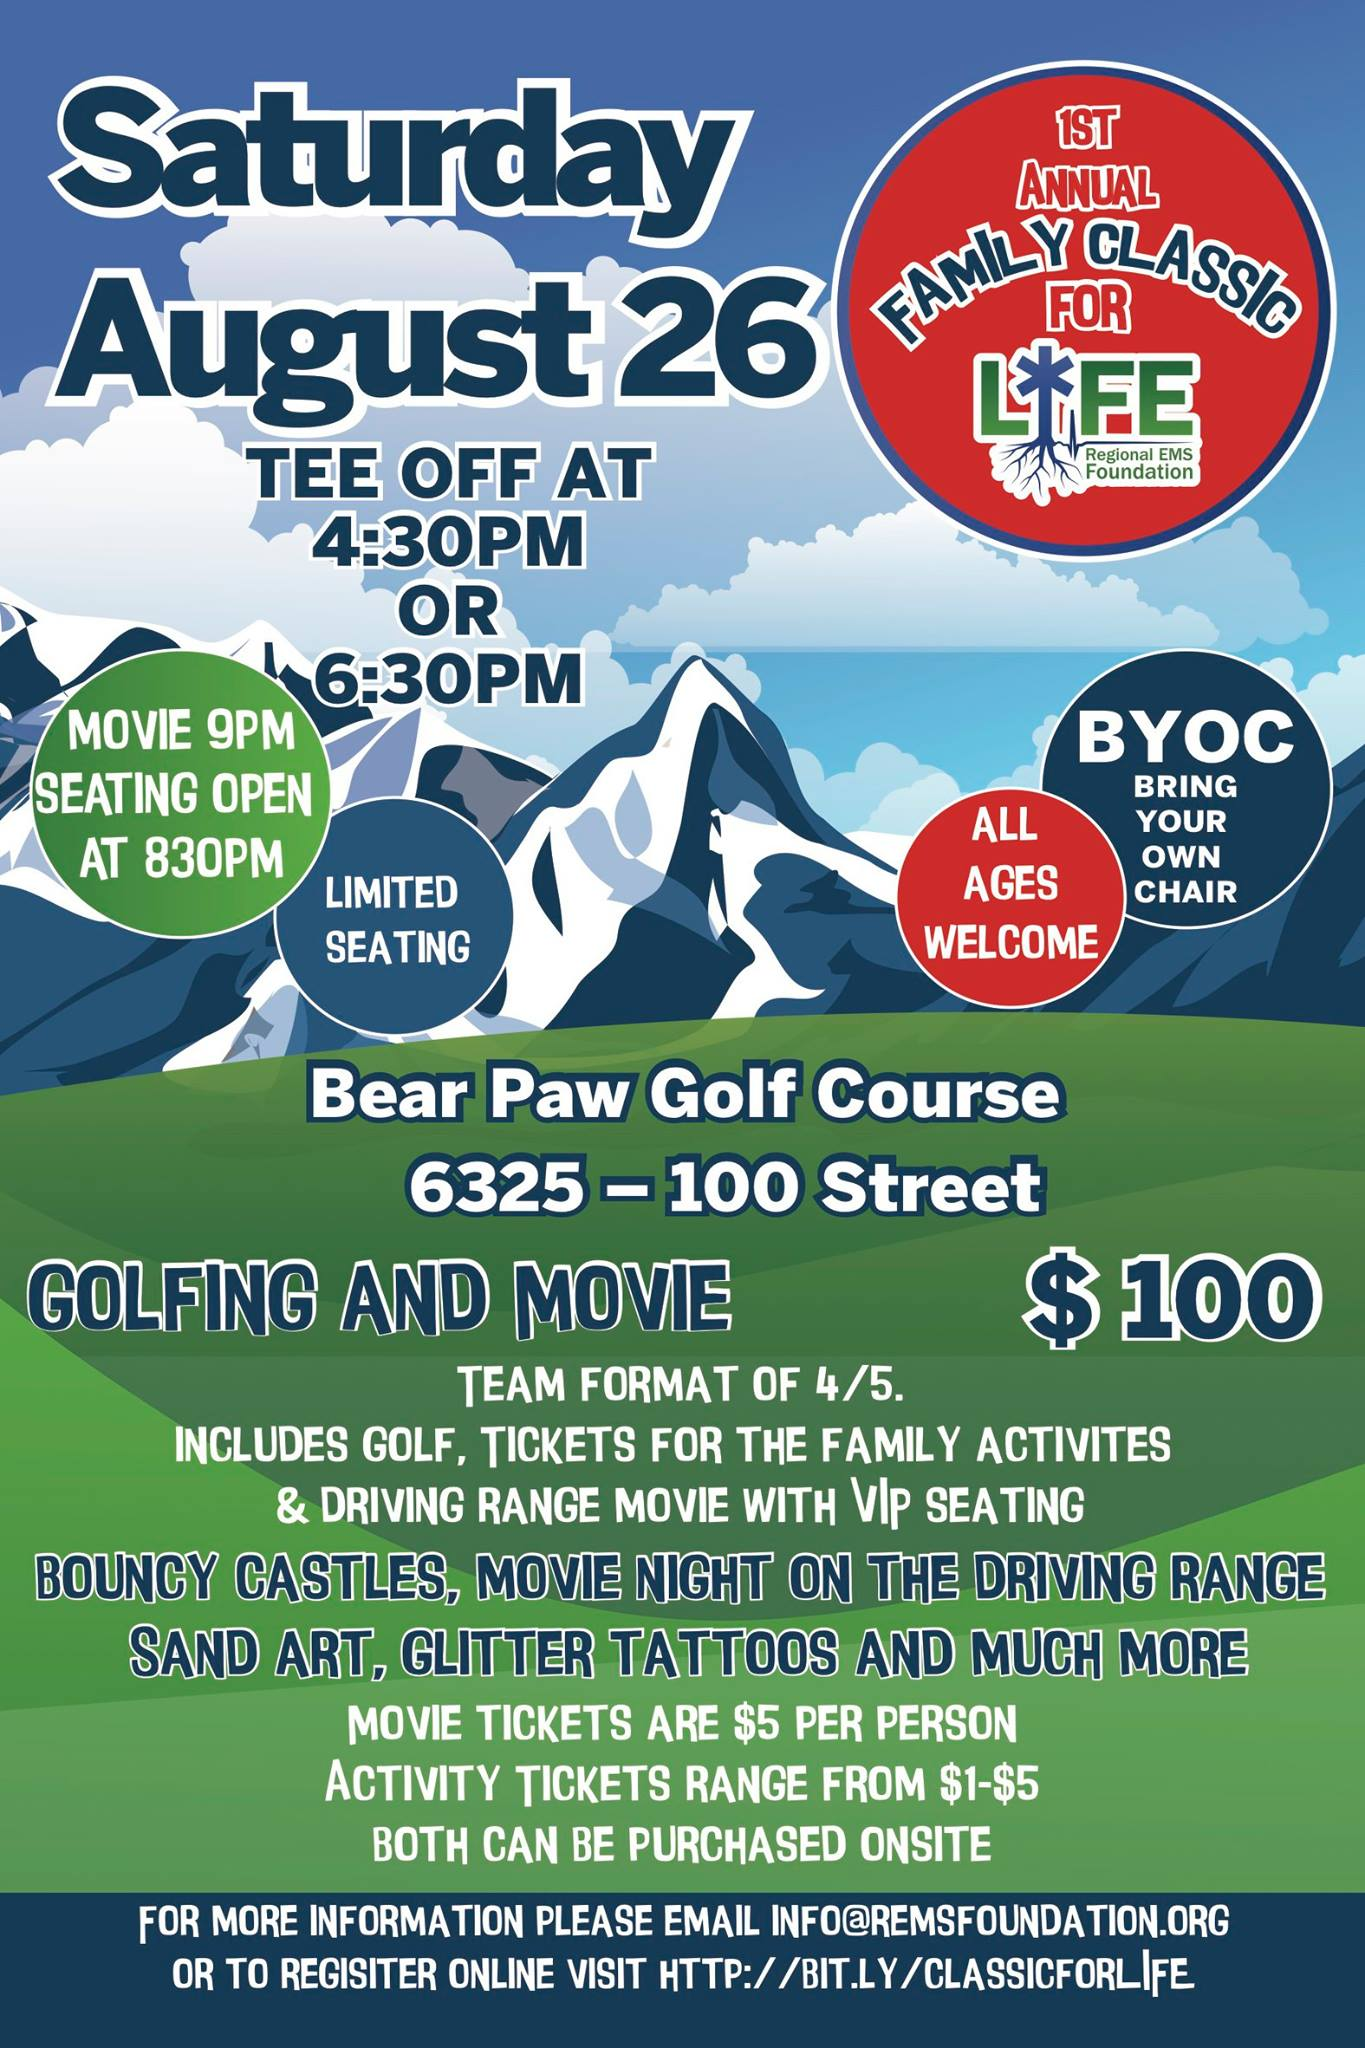 Regional EMS Foundation's Family Classic for Life is this Saturday